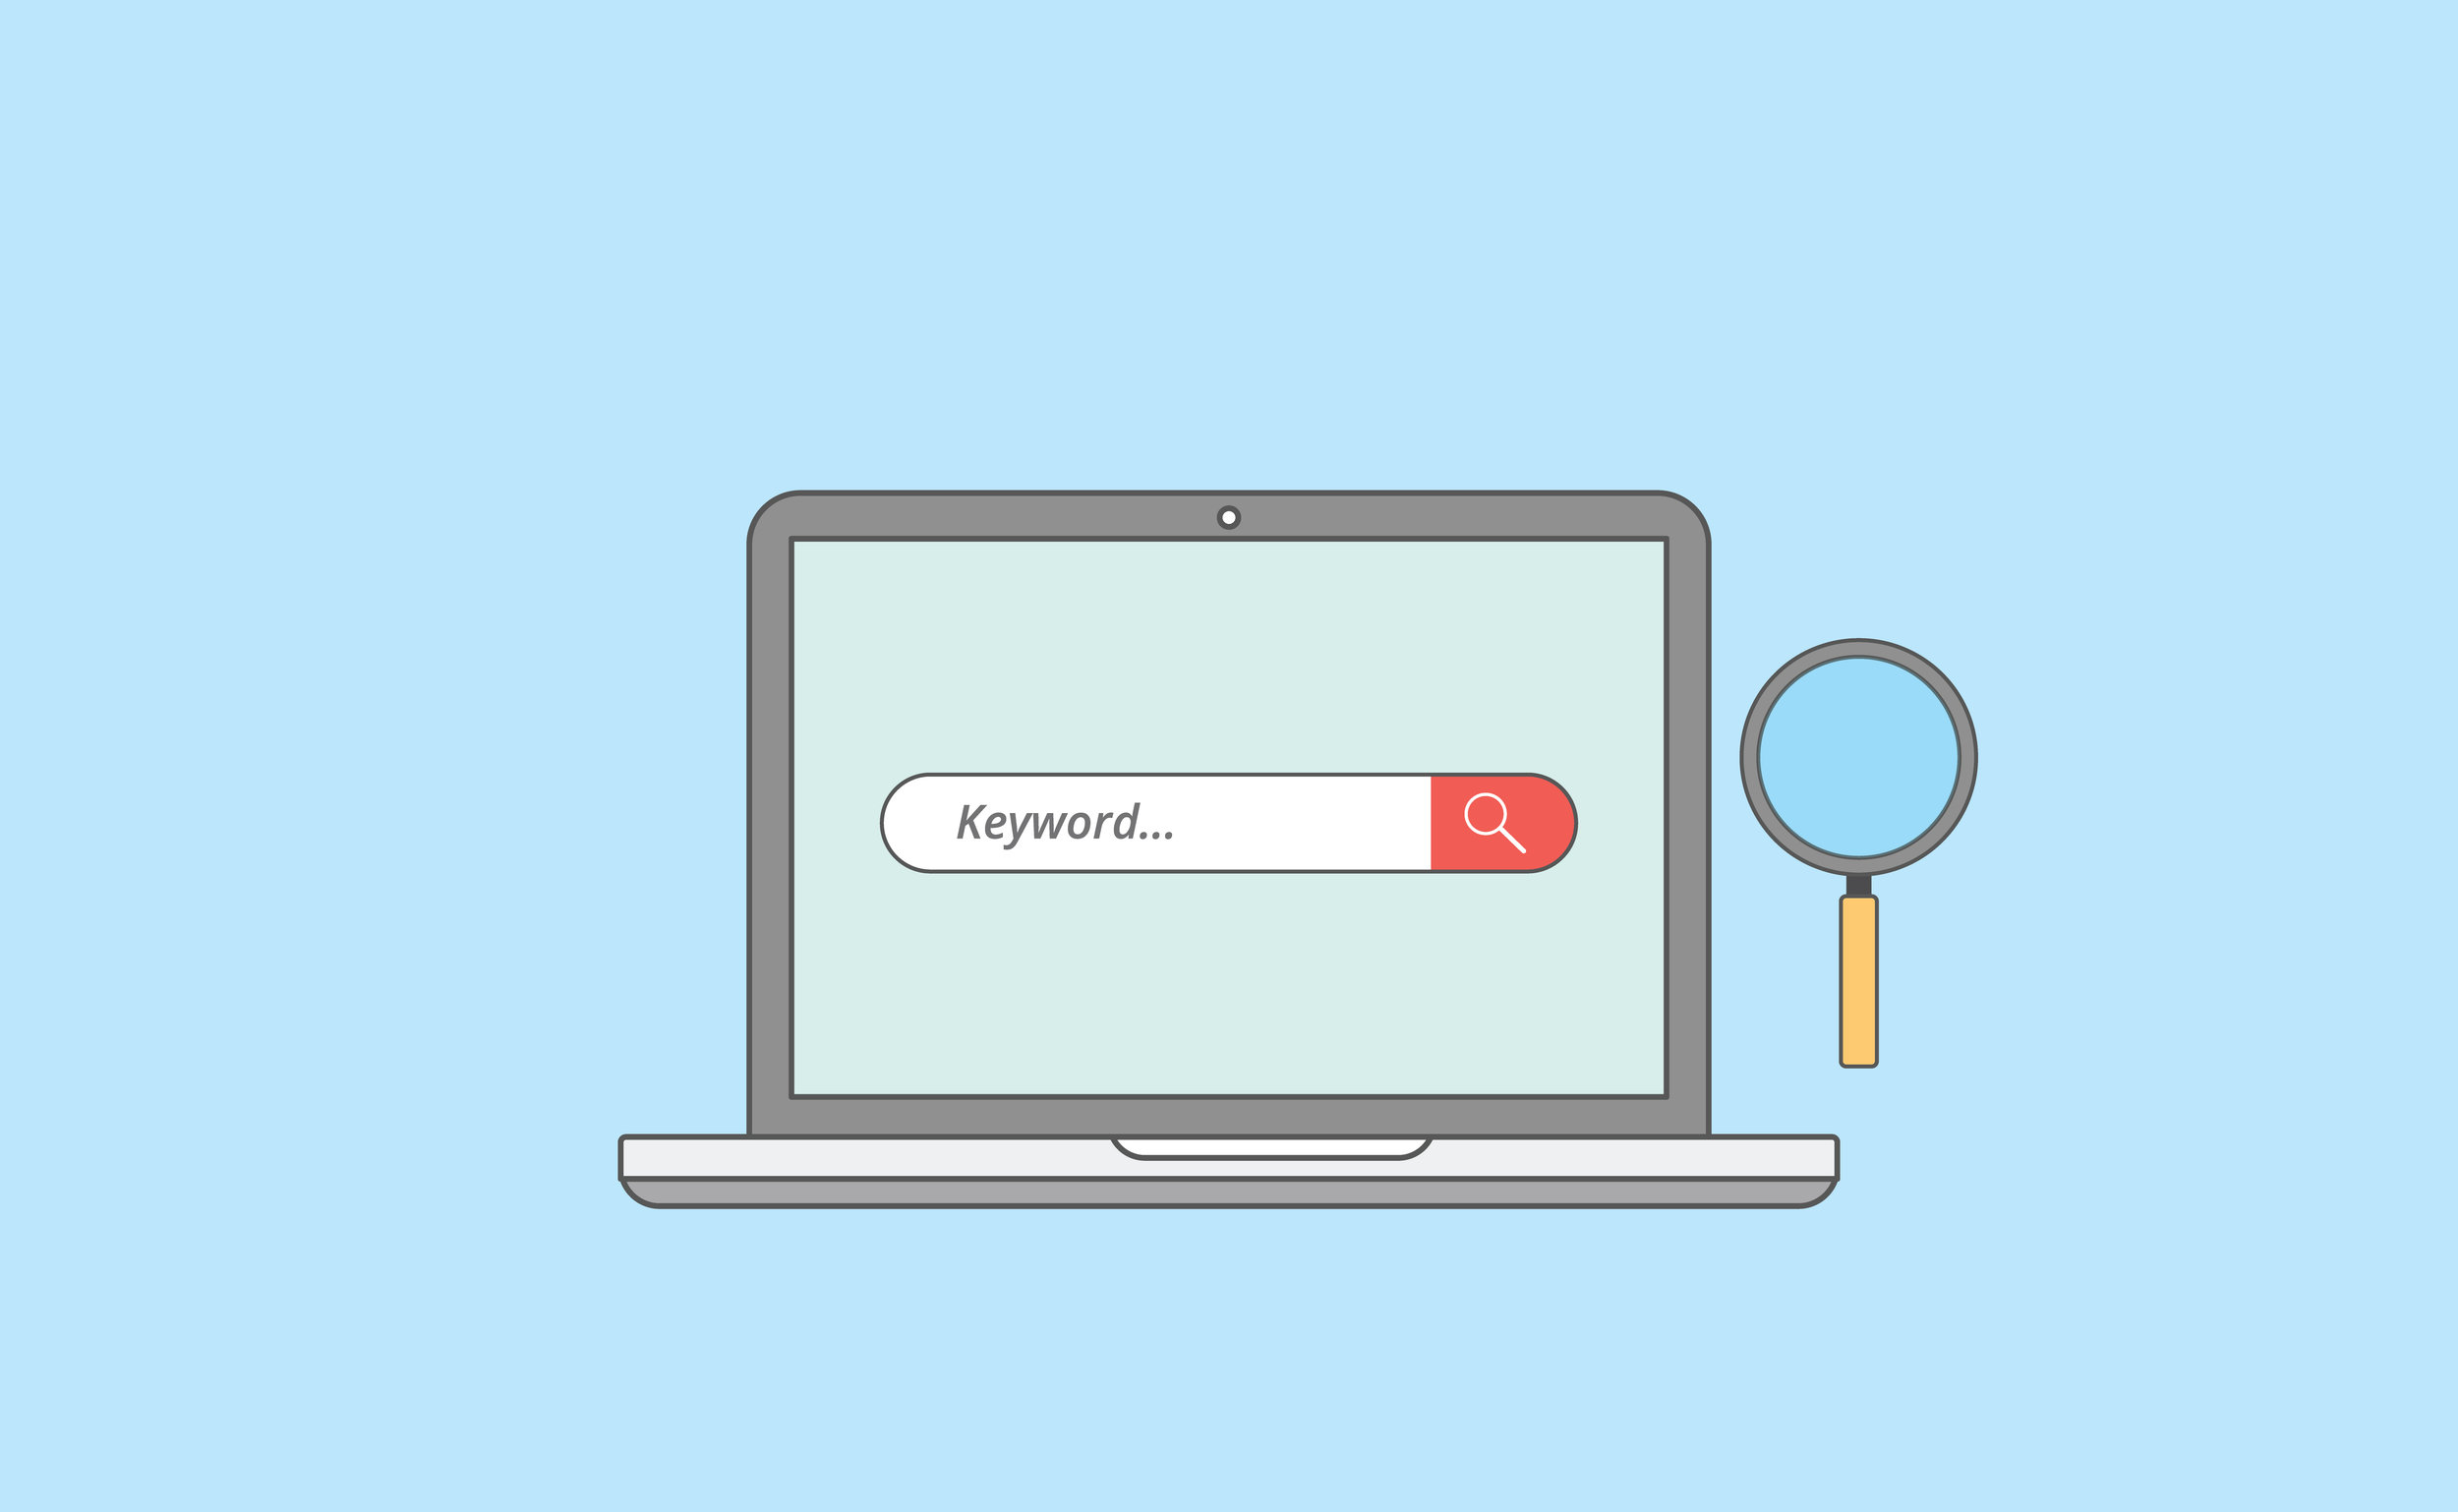 The best places to do keyword research? Try searching on Google and looking for the suggested searches or use Google Keyword Planner Tool.